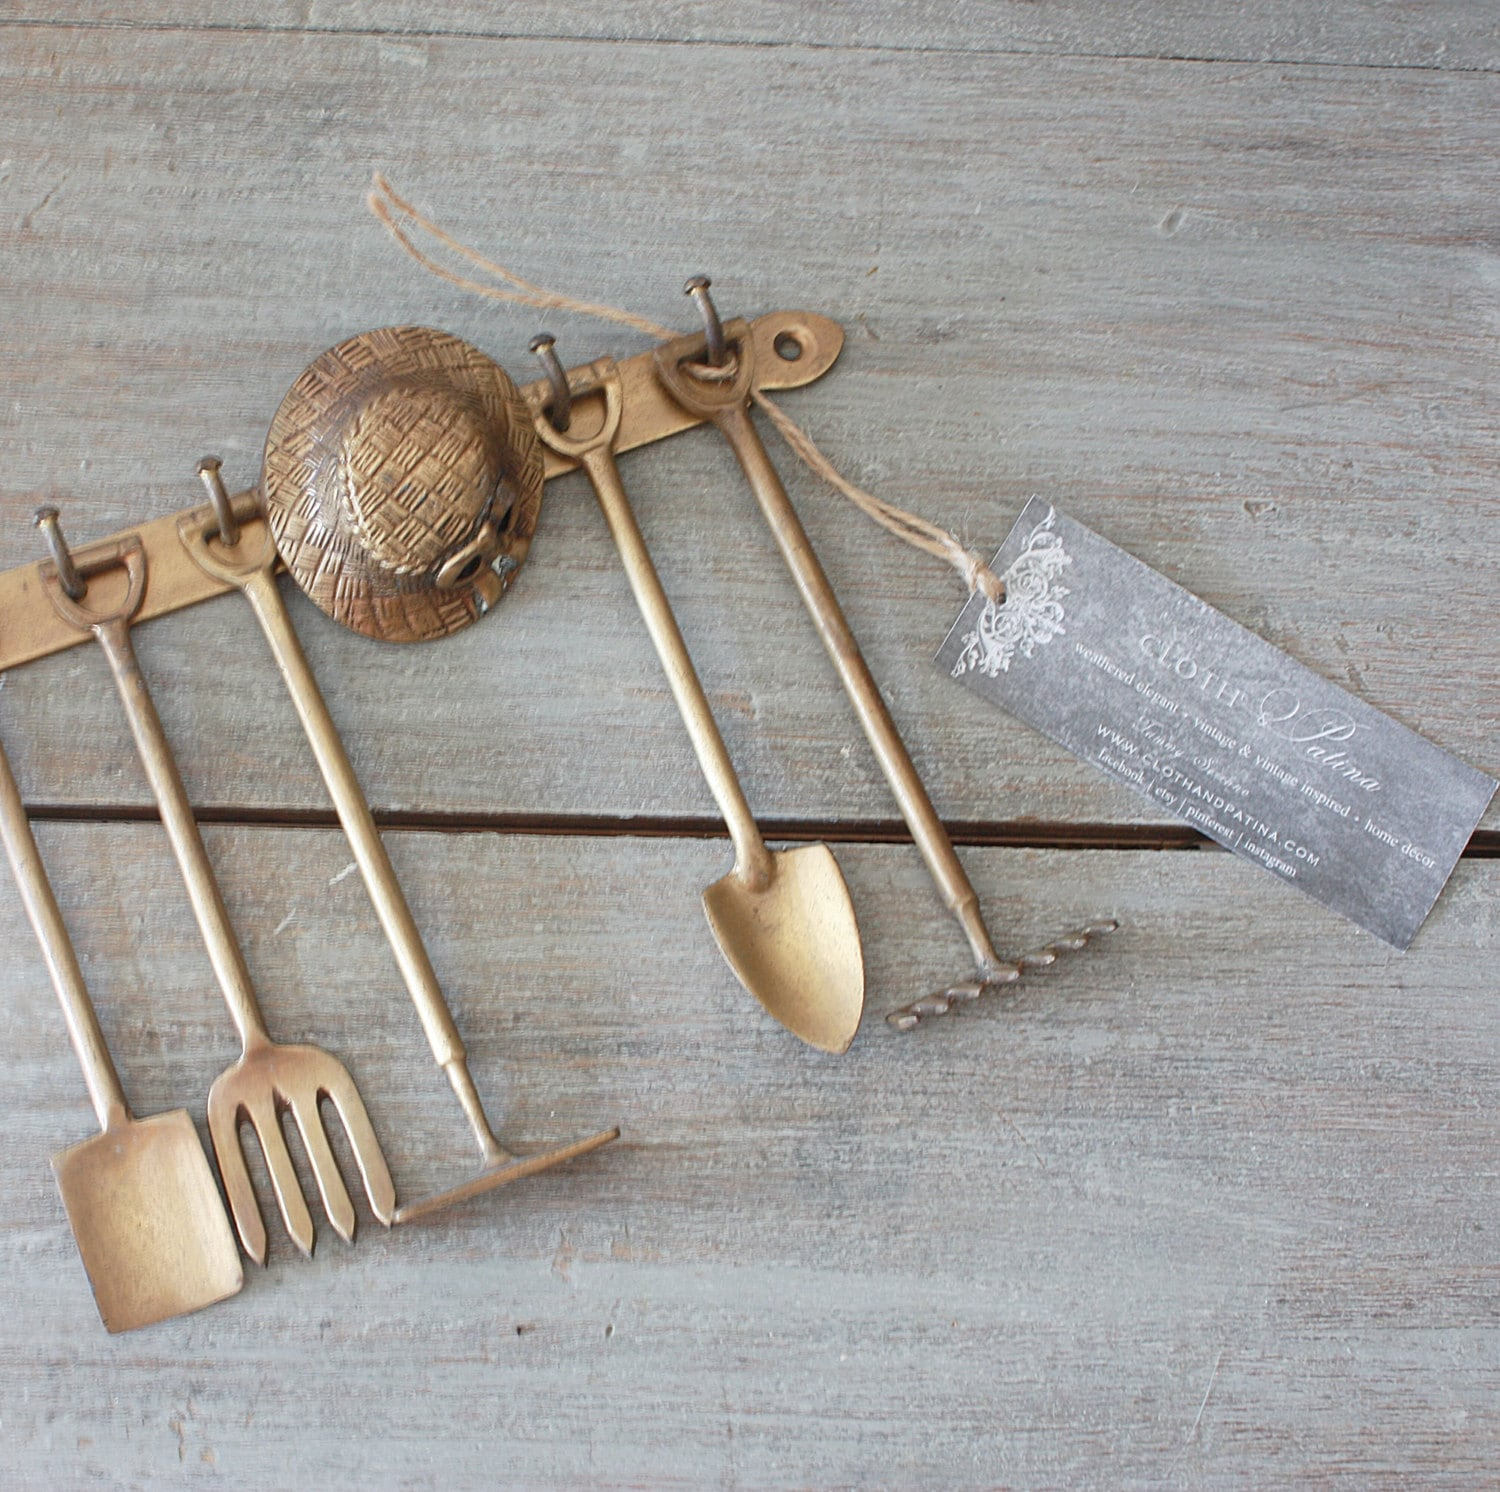 Vintage brass hanging garden tool set for Gardening tools vintage